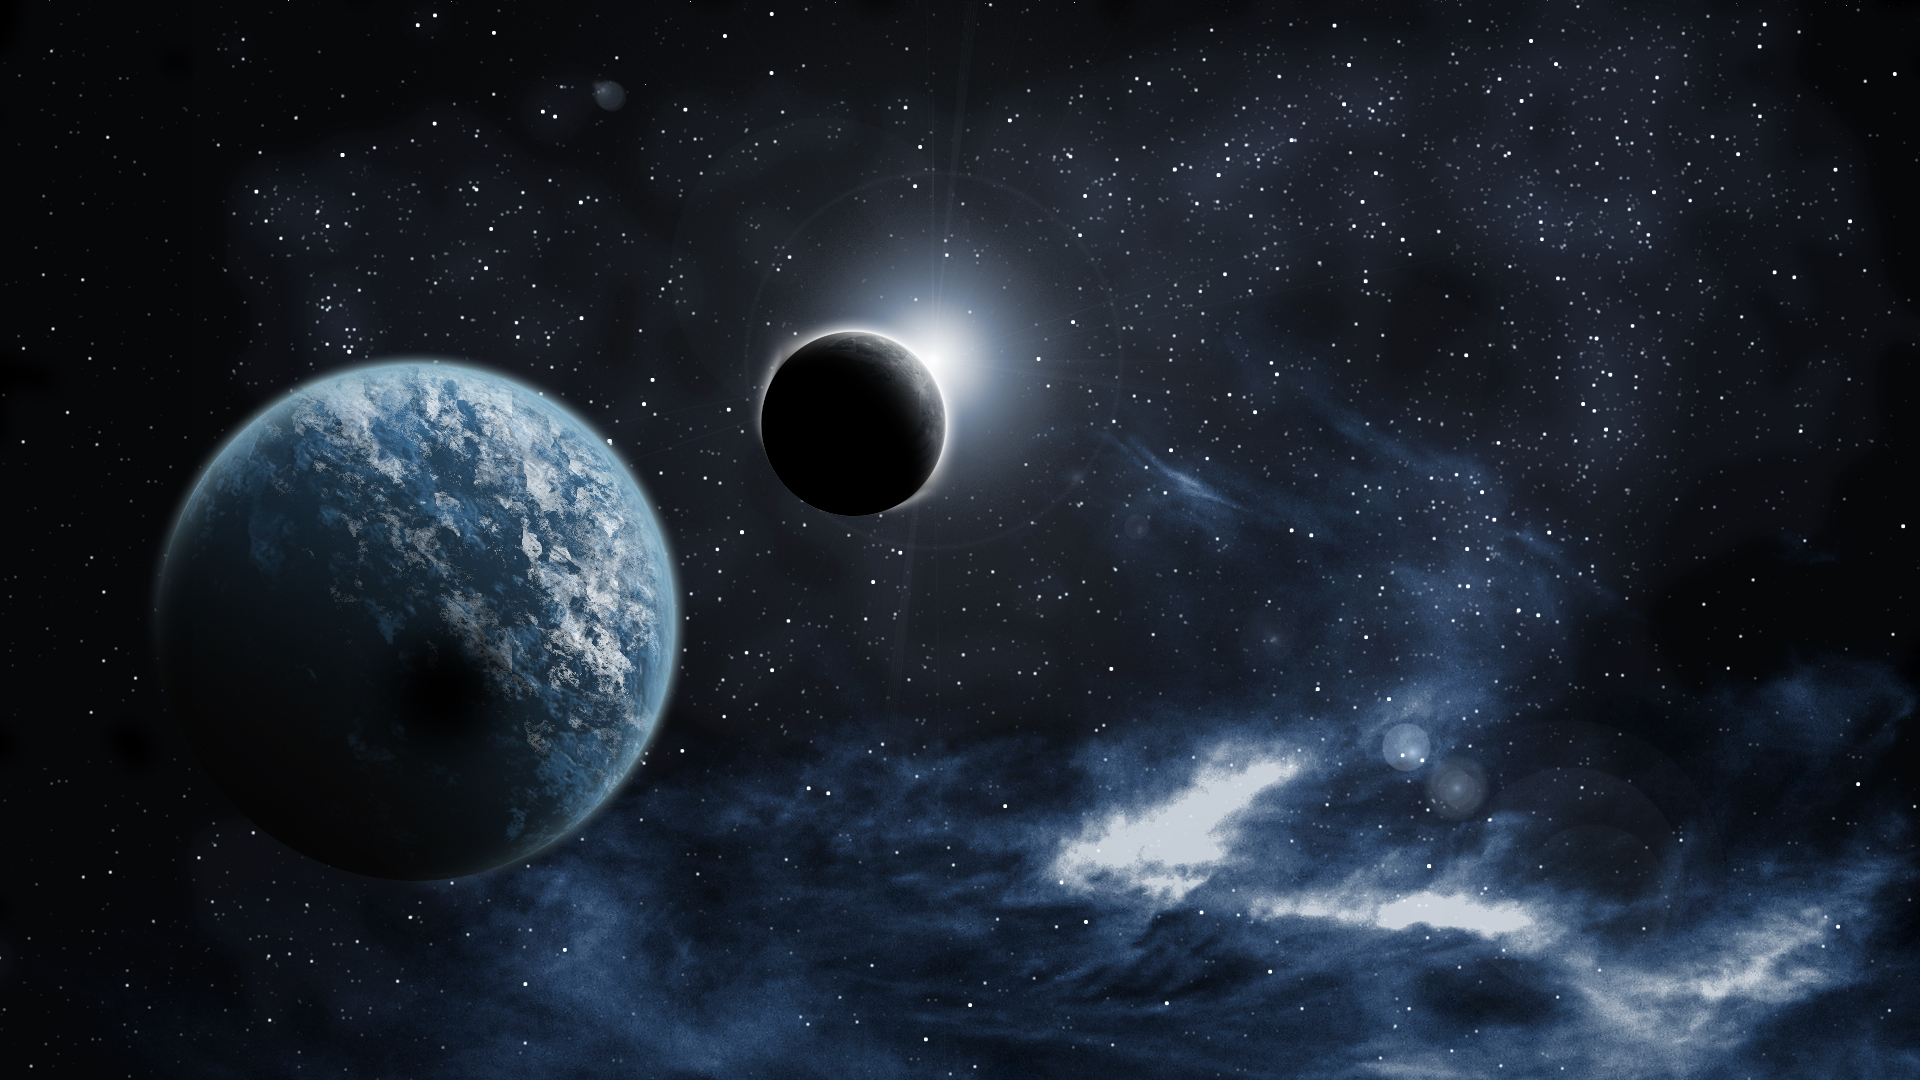 wallpaper background moon planets wallpapers 1920x1080 1920x1080